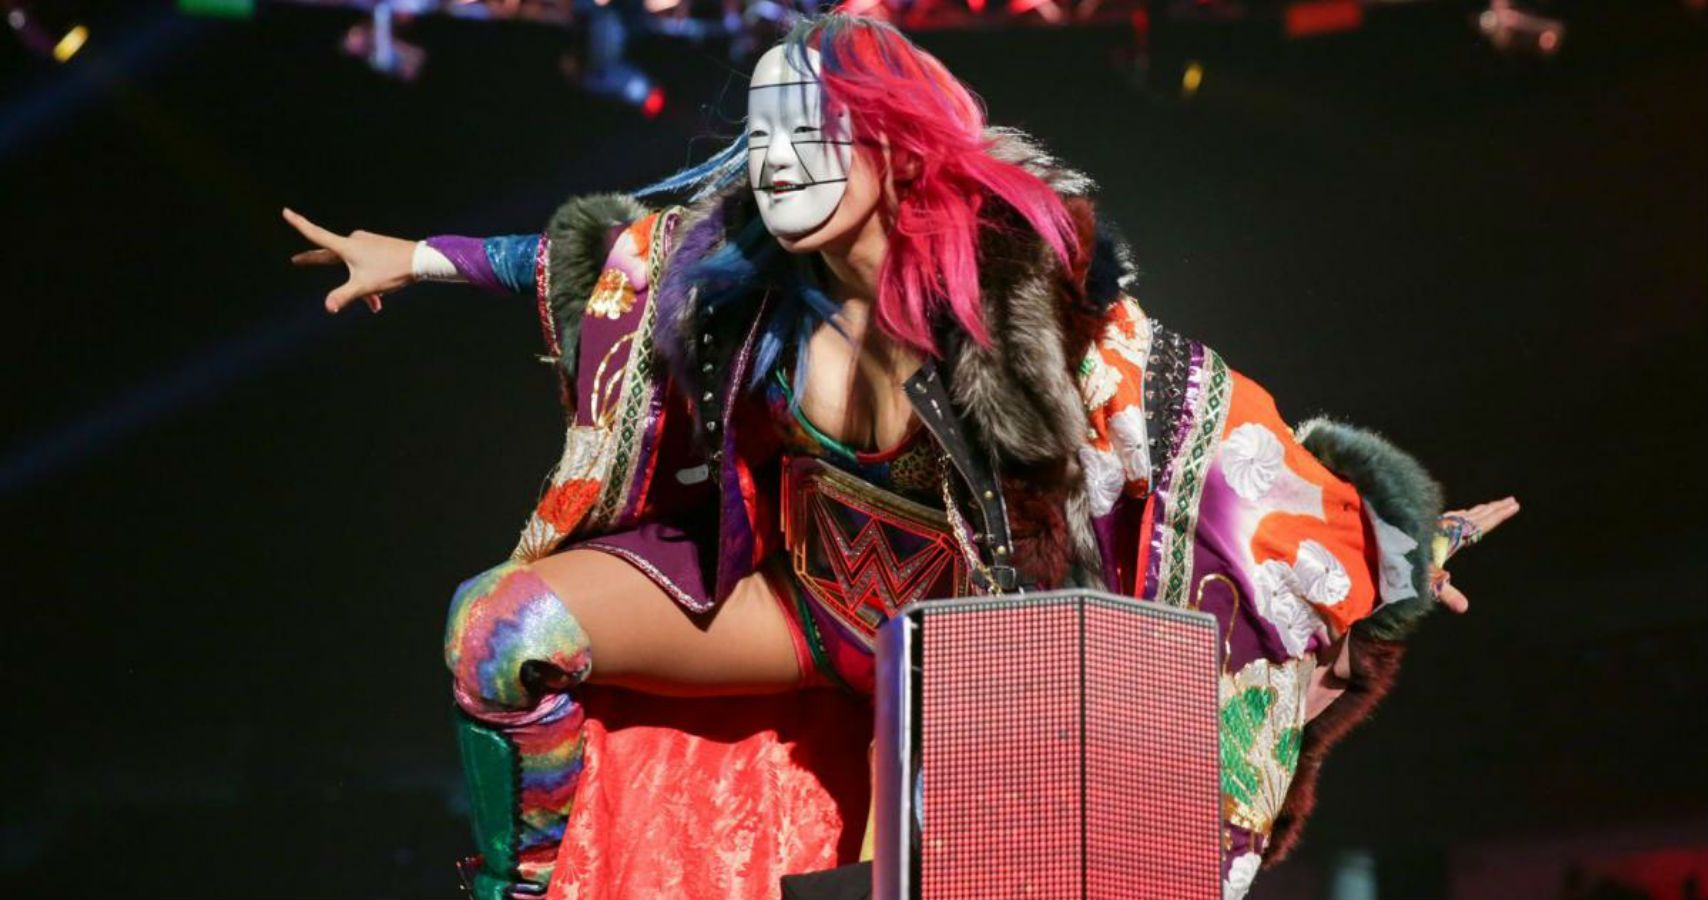 asuka possibly injured live event